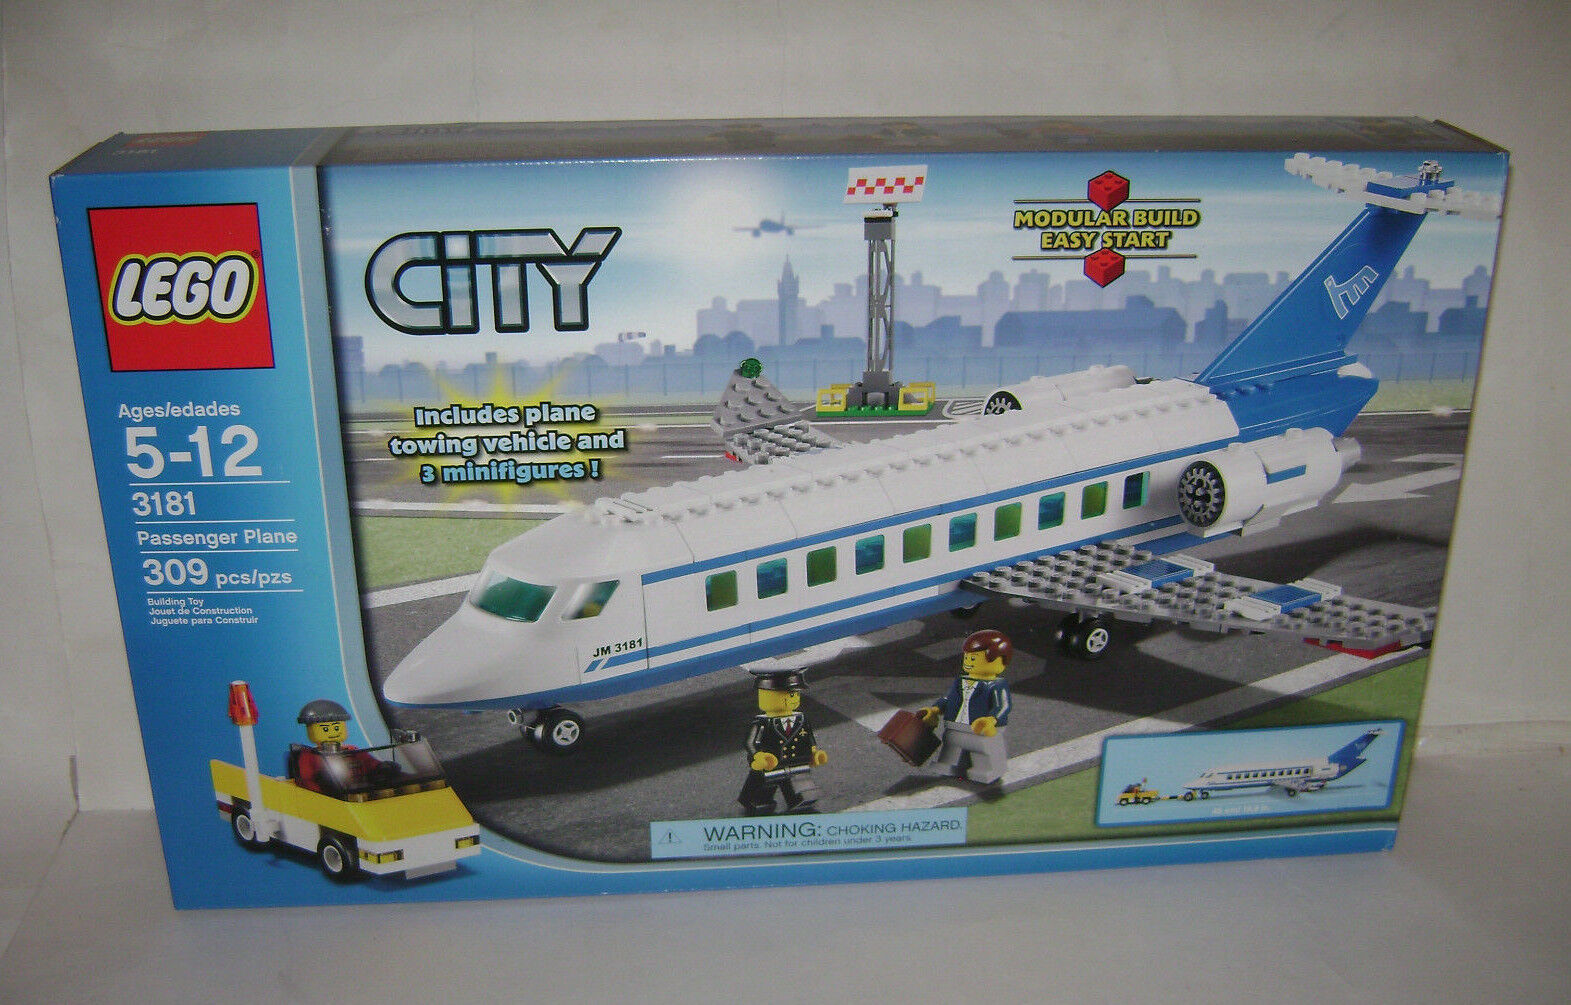 NEW 3181 Lego CITY Passenger Plane Building Toy SEALED BOX RETIrosso RARE A